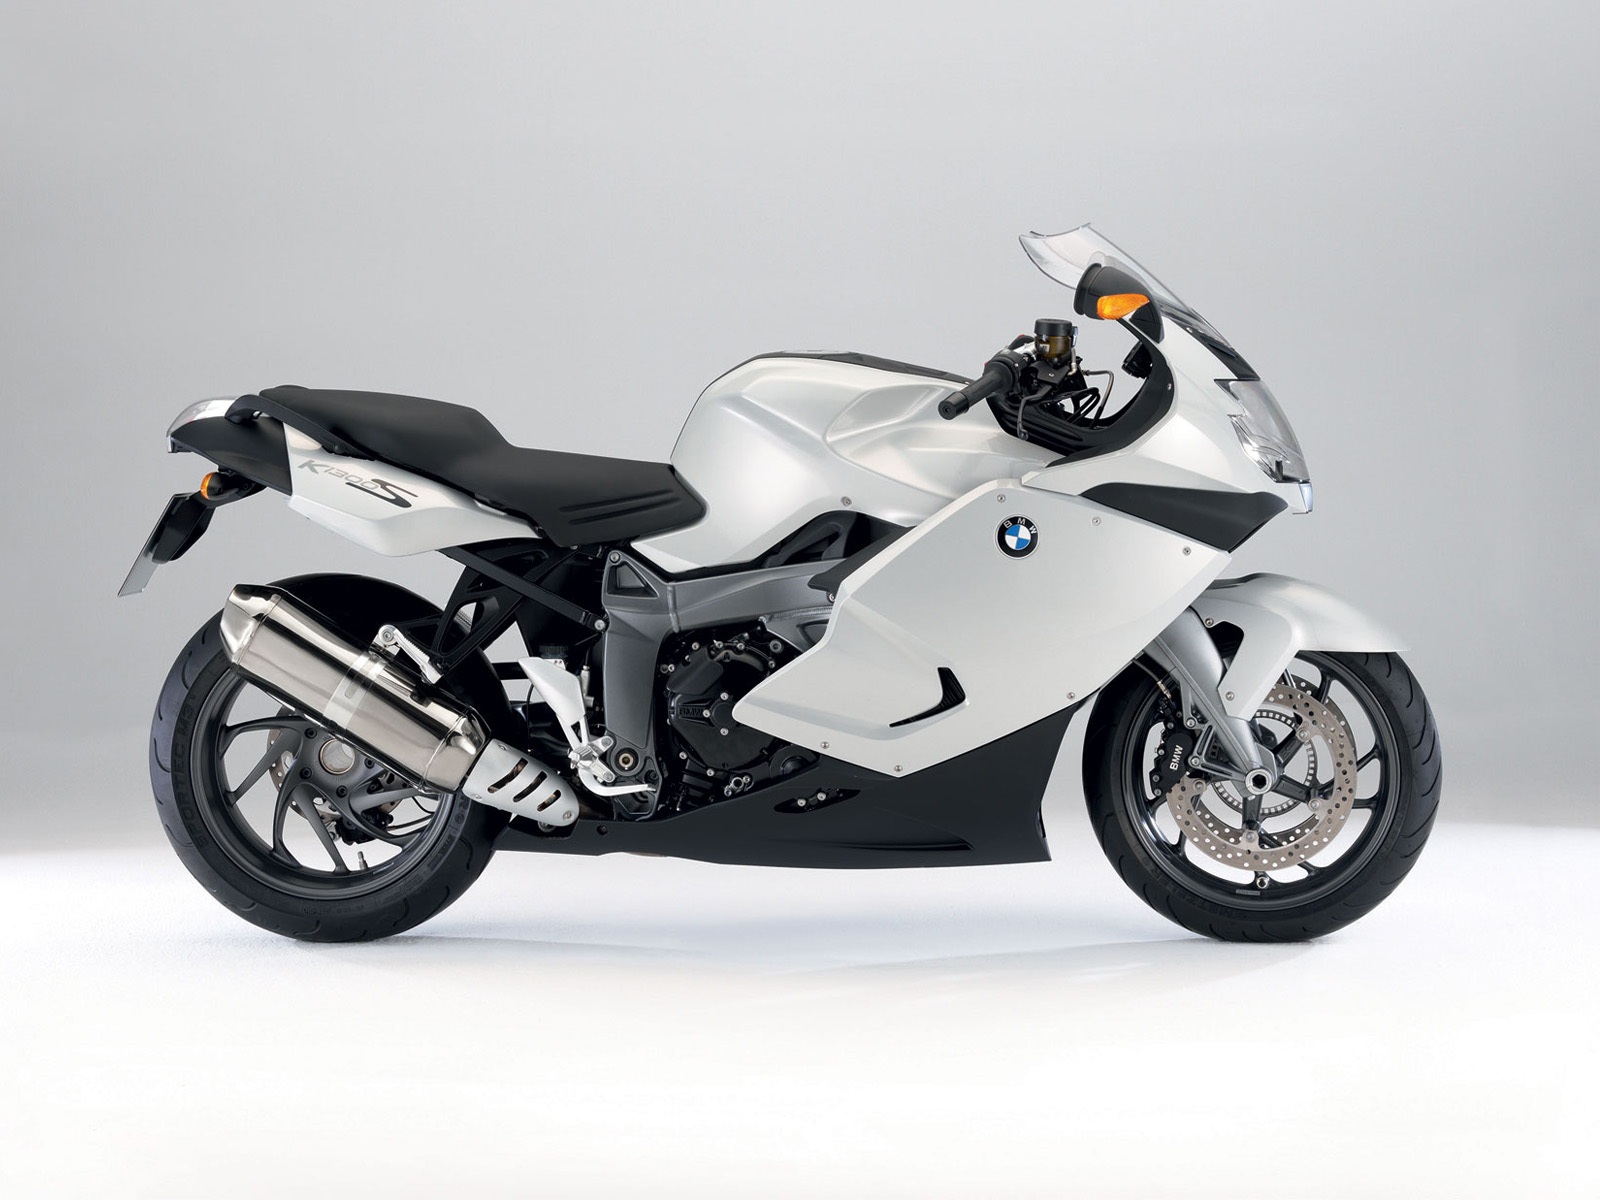 2009 BMW K1300S Motorcycles 309.39 Kb